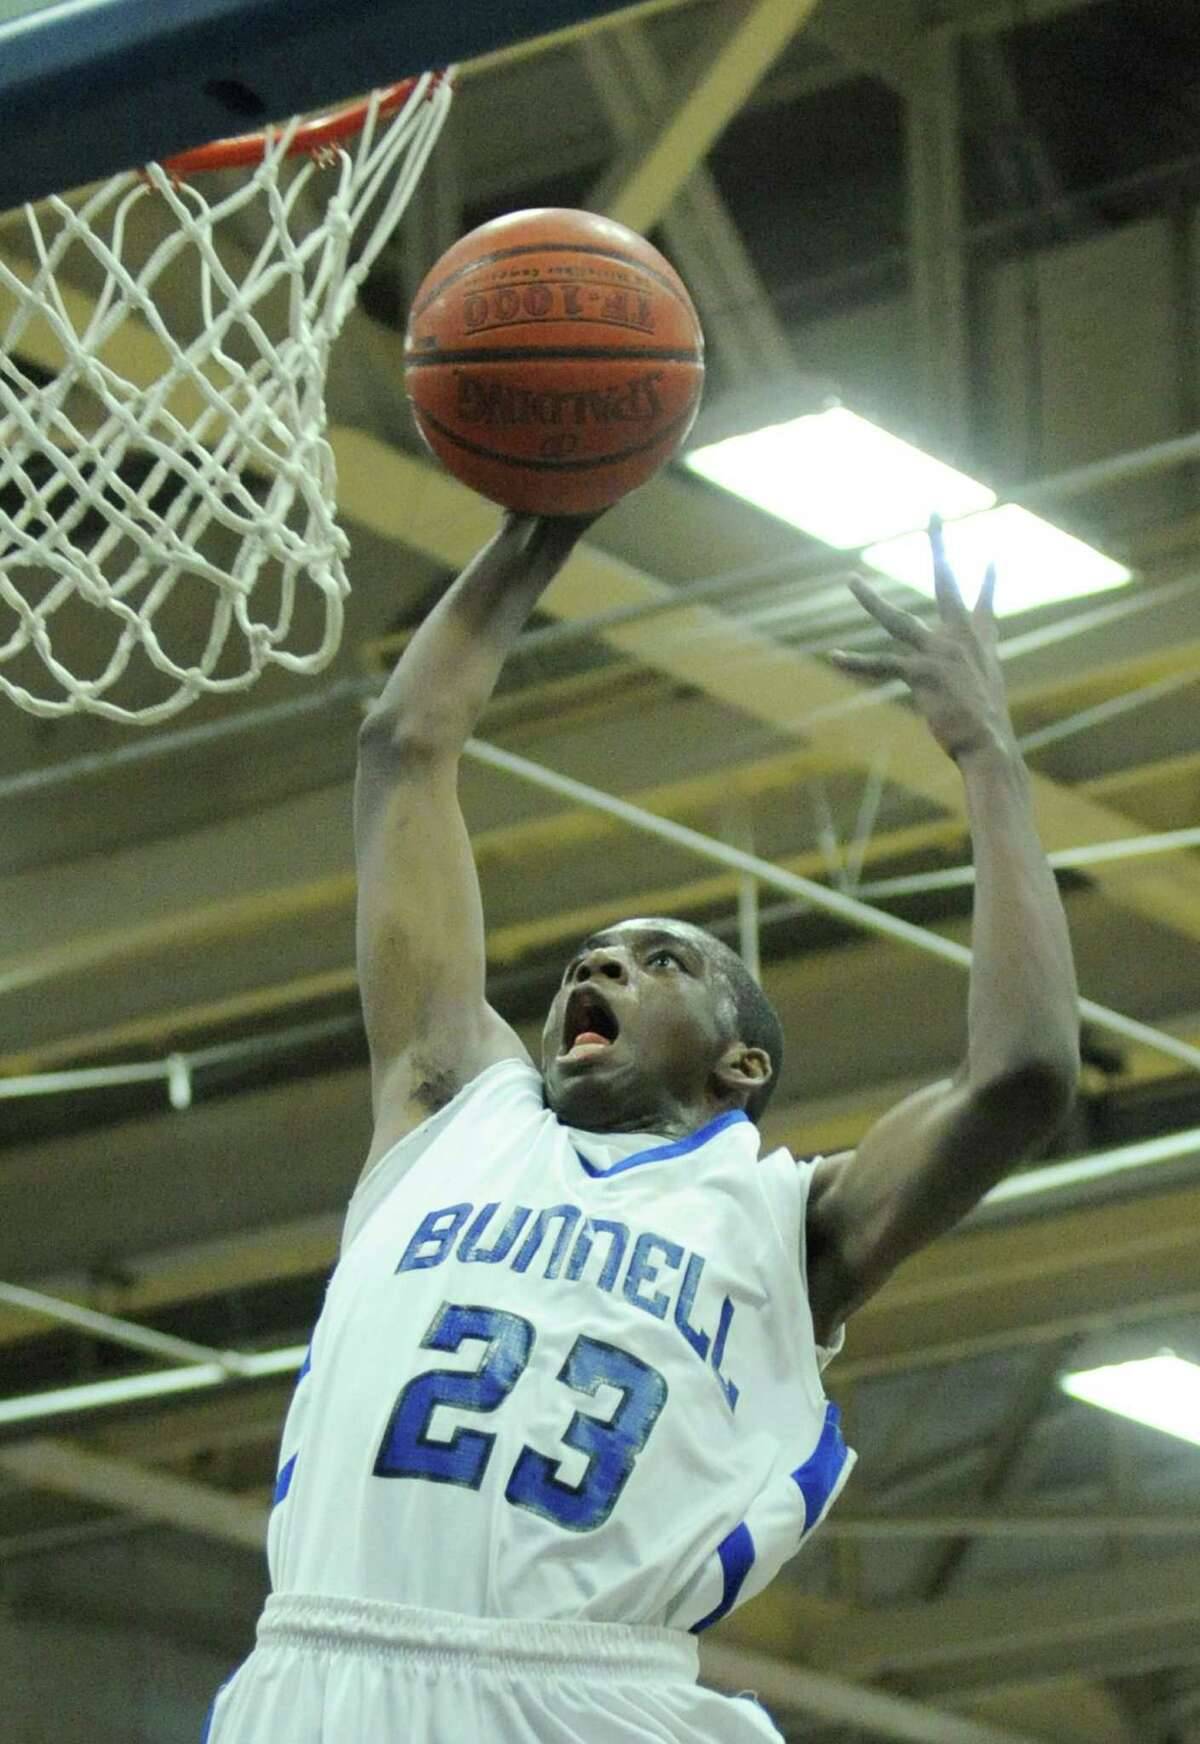 Bunnell's Issac Vann slam dunks during Bunnell's 71-61 win in the SWC Boys Basketball Championship game at Bunnell High School in Stratford, Conn. Thursday, Feb. 28, 2013.